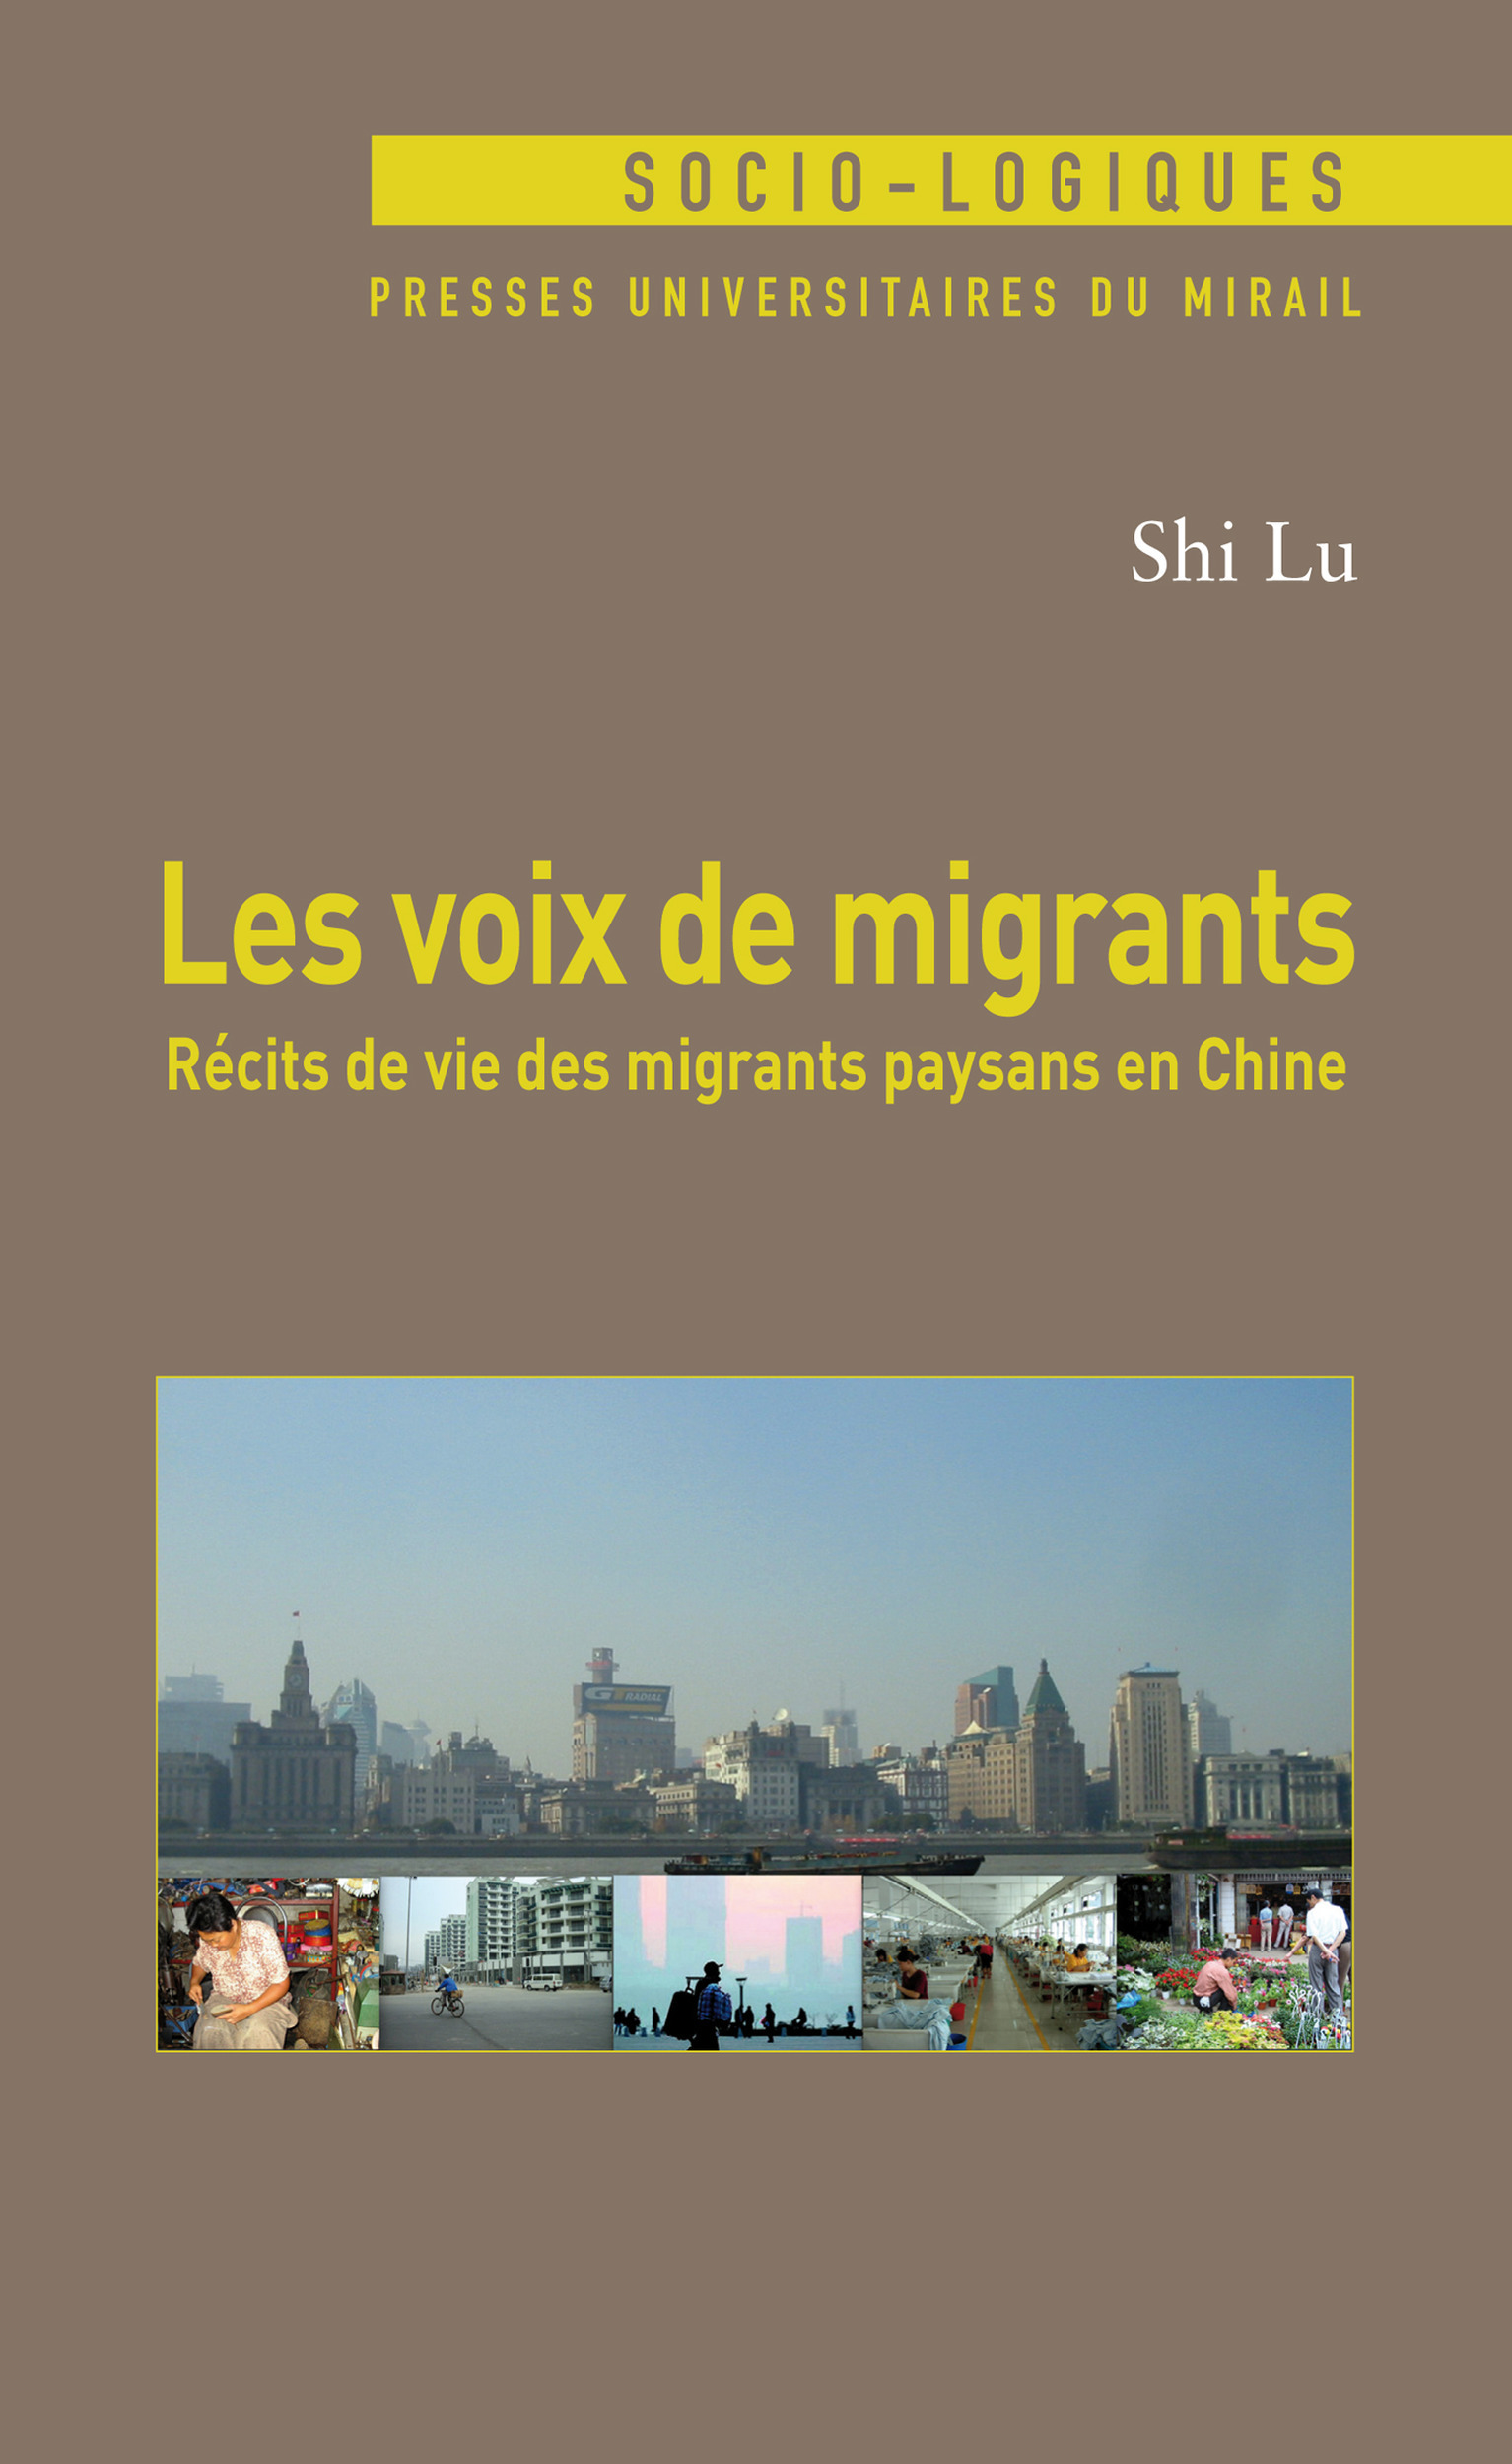 Voix de migrants